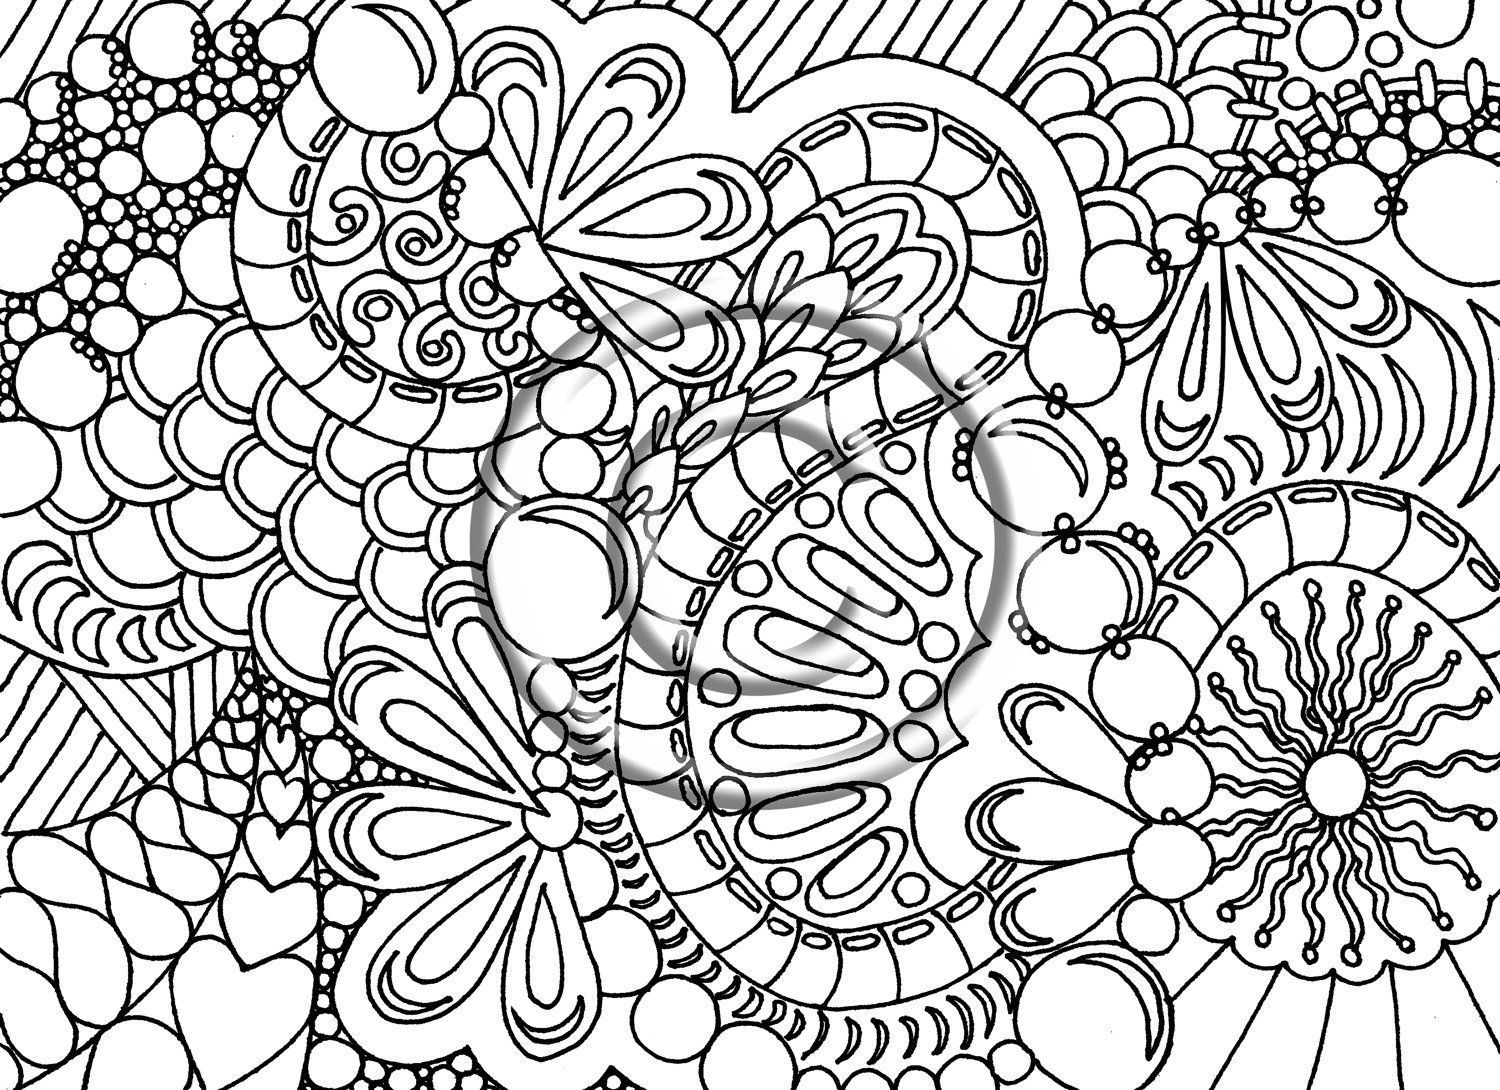 Flower And Heart Free Adult Coloring Pages Printable - Coloring ...